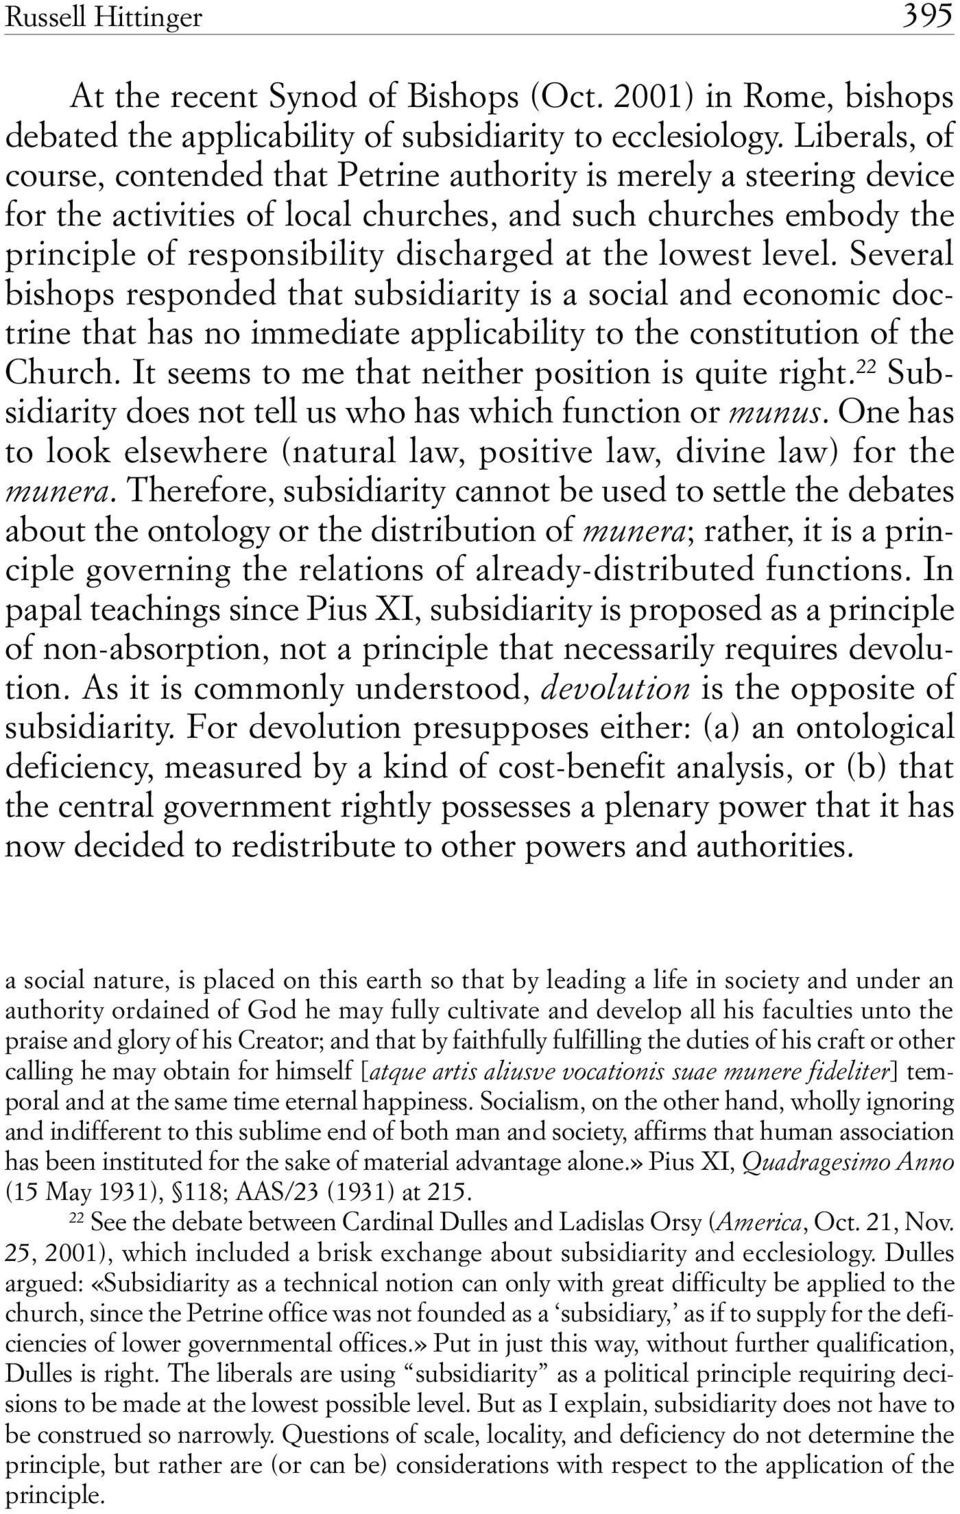 lowest level. Several bishops responded that subsidiarity is a social and economic doctrine that has no immediate applicability to the constitution of the Church.